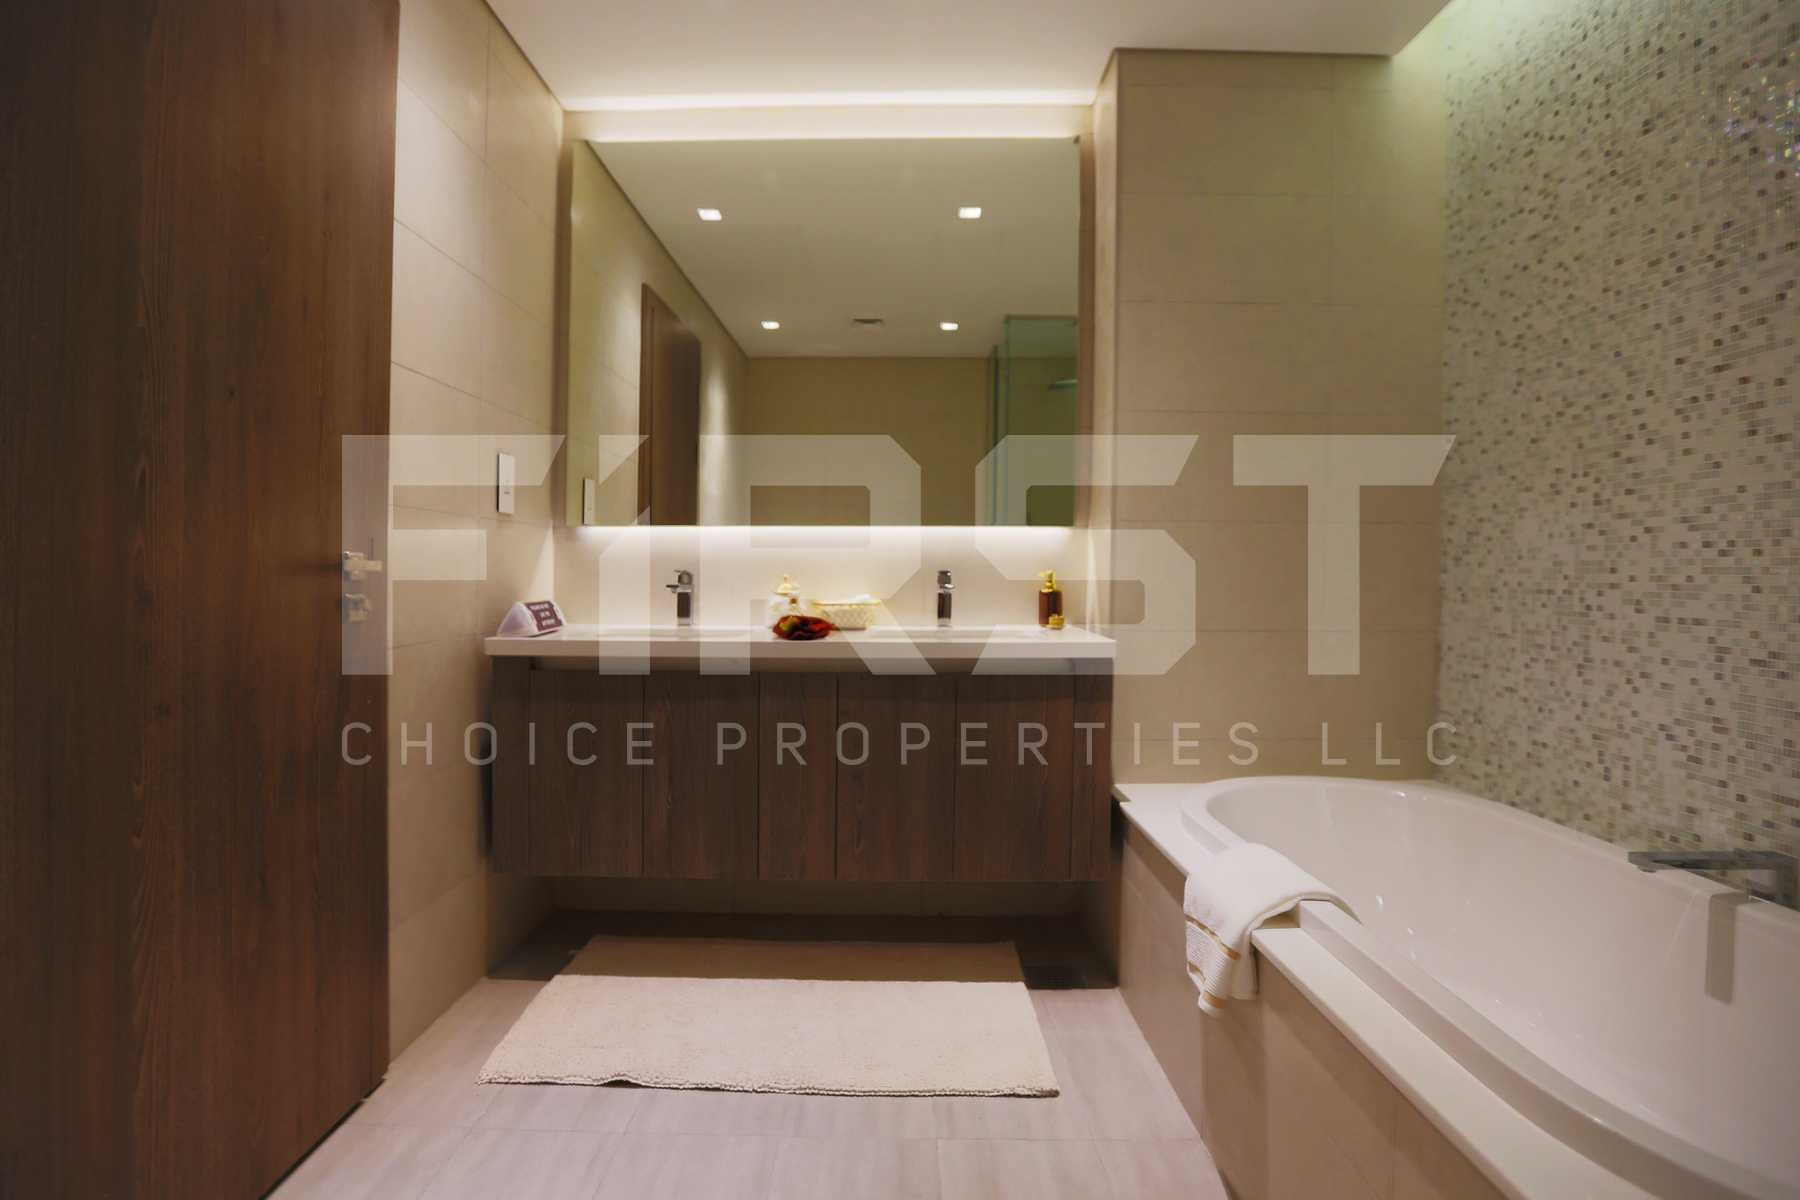 Internal Photo of 3 Bedroom Townhouse Type 3EA in Yas Acres Yas Island Abu Dhabi UAE (15).jpg